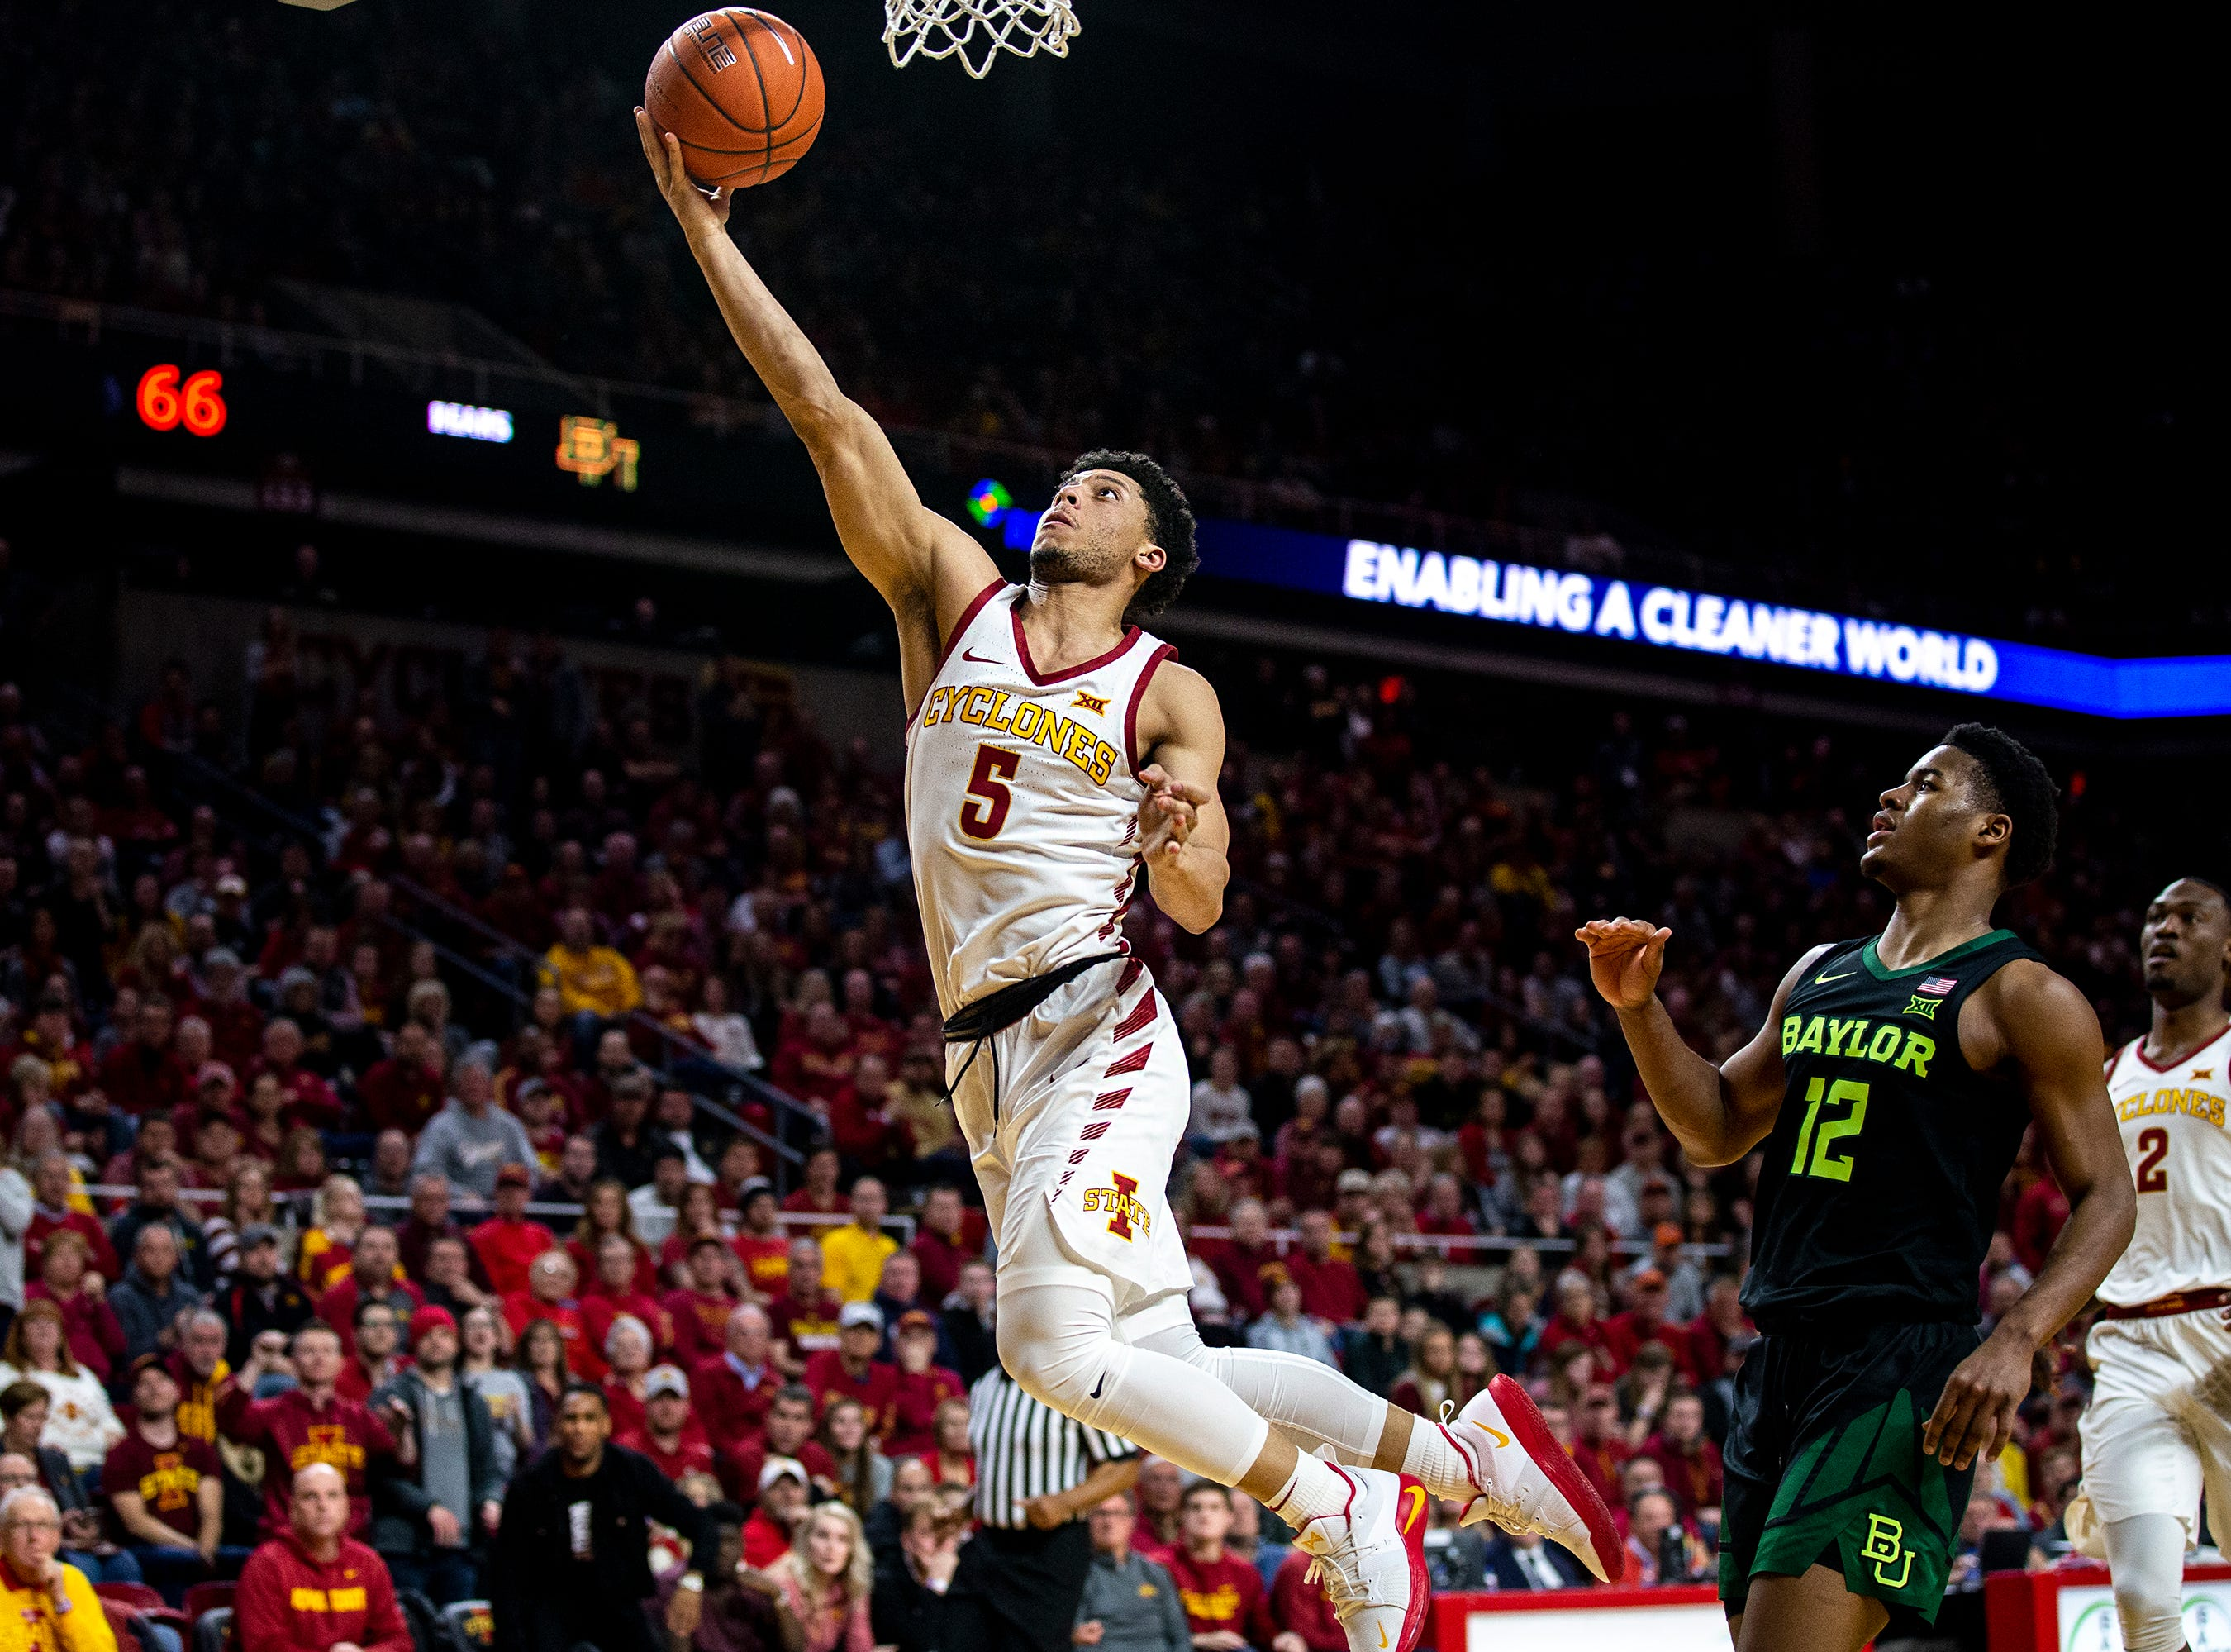 Iowa State's Lindell Wigginton shoots the ball during the Iowa State men's basketball game against Baylor on Tuesday, Feb. 19, 2019, in Hilton Coliseum. The Cyclones fell to the Bears 69-73.